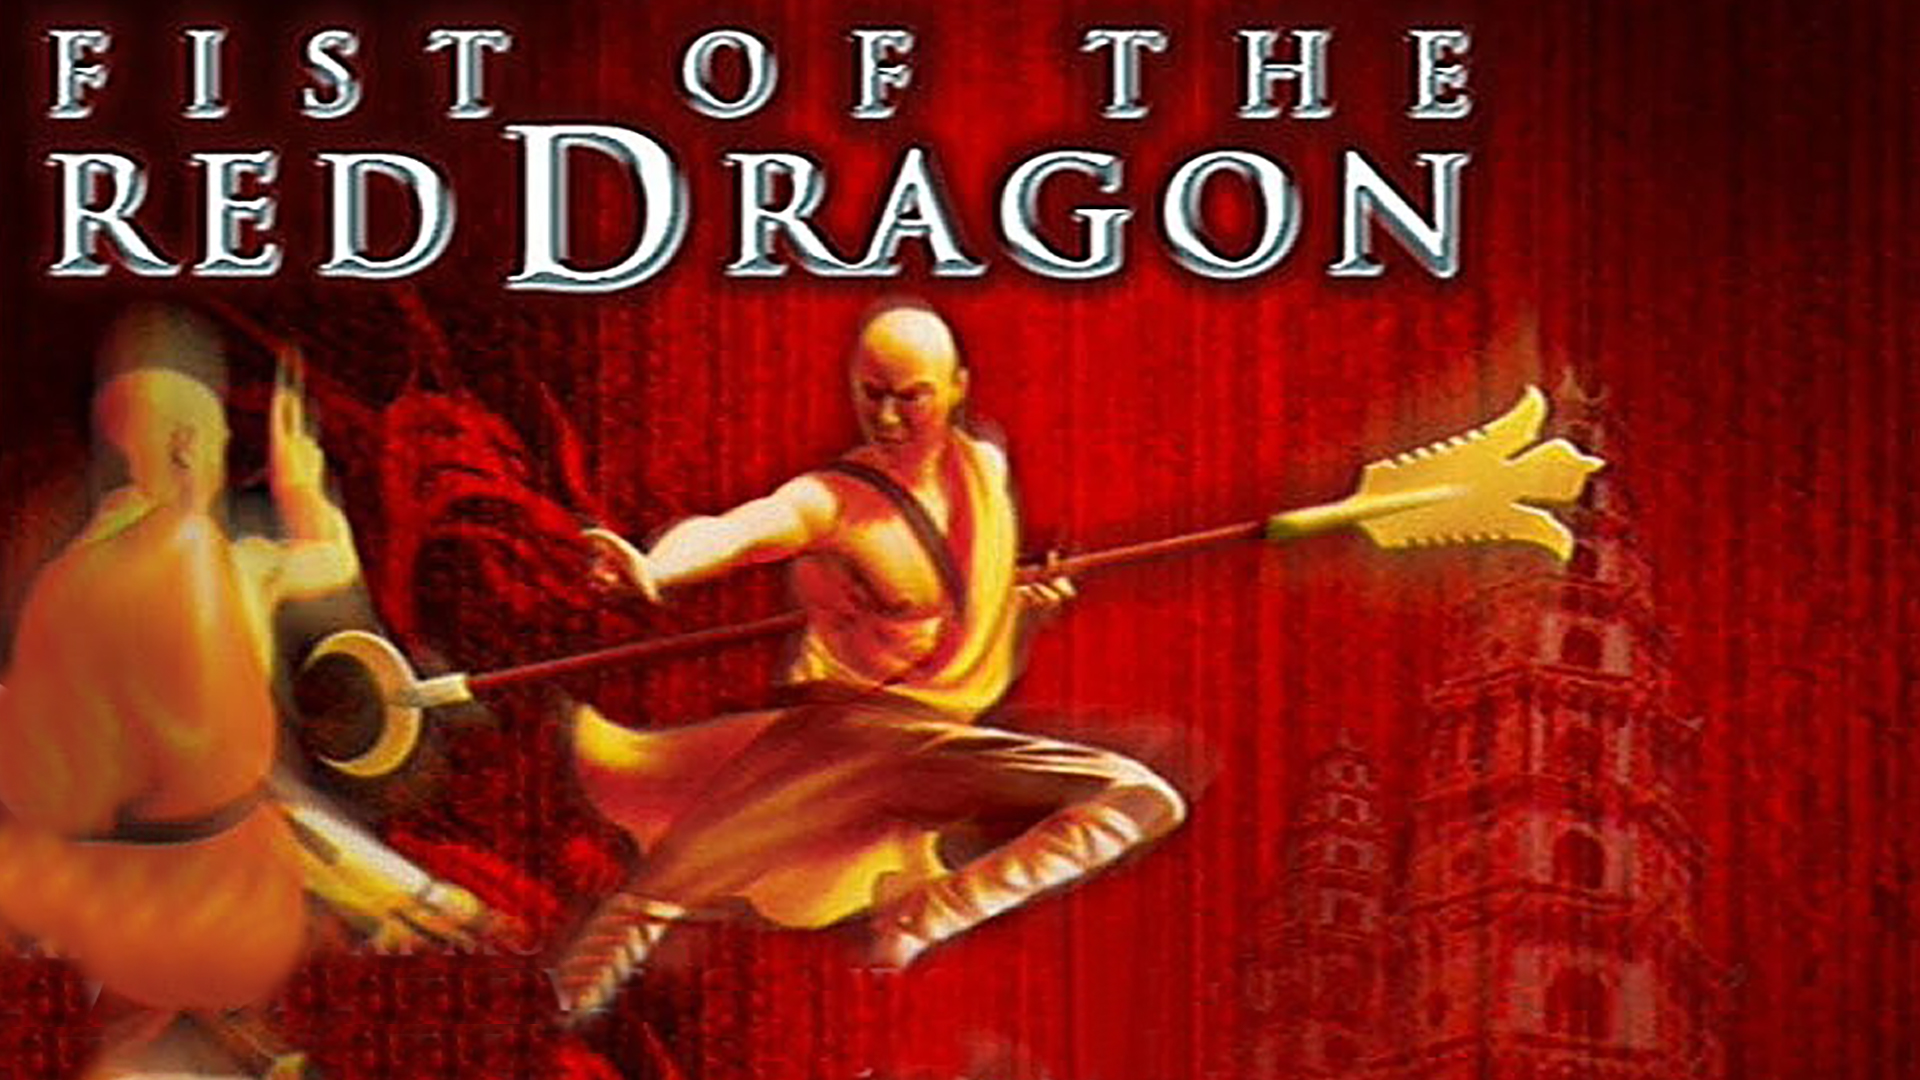 Fist of the Red Dragon